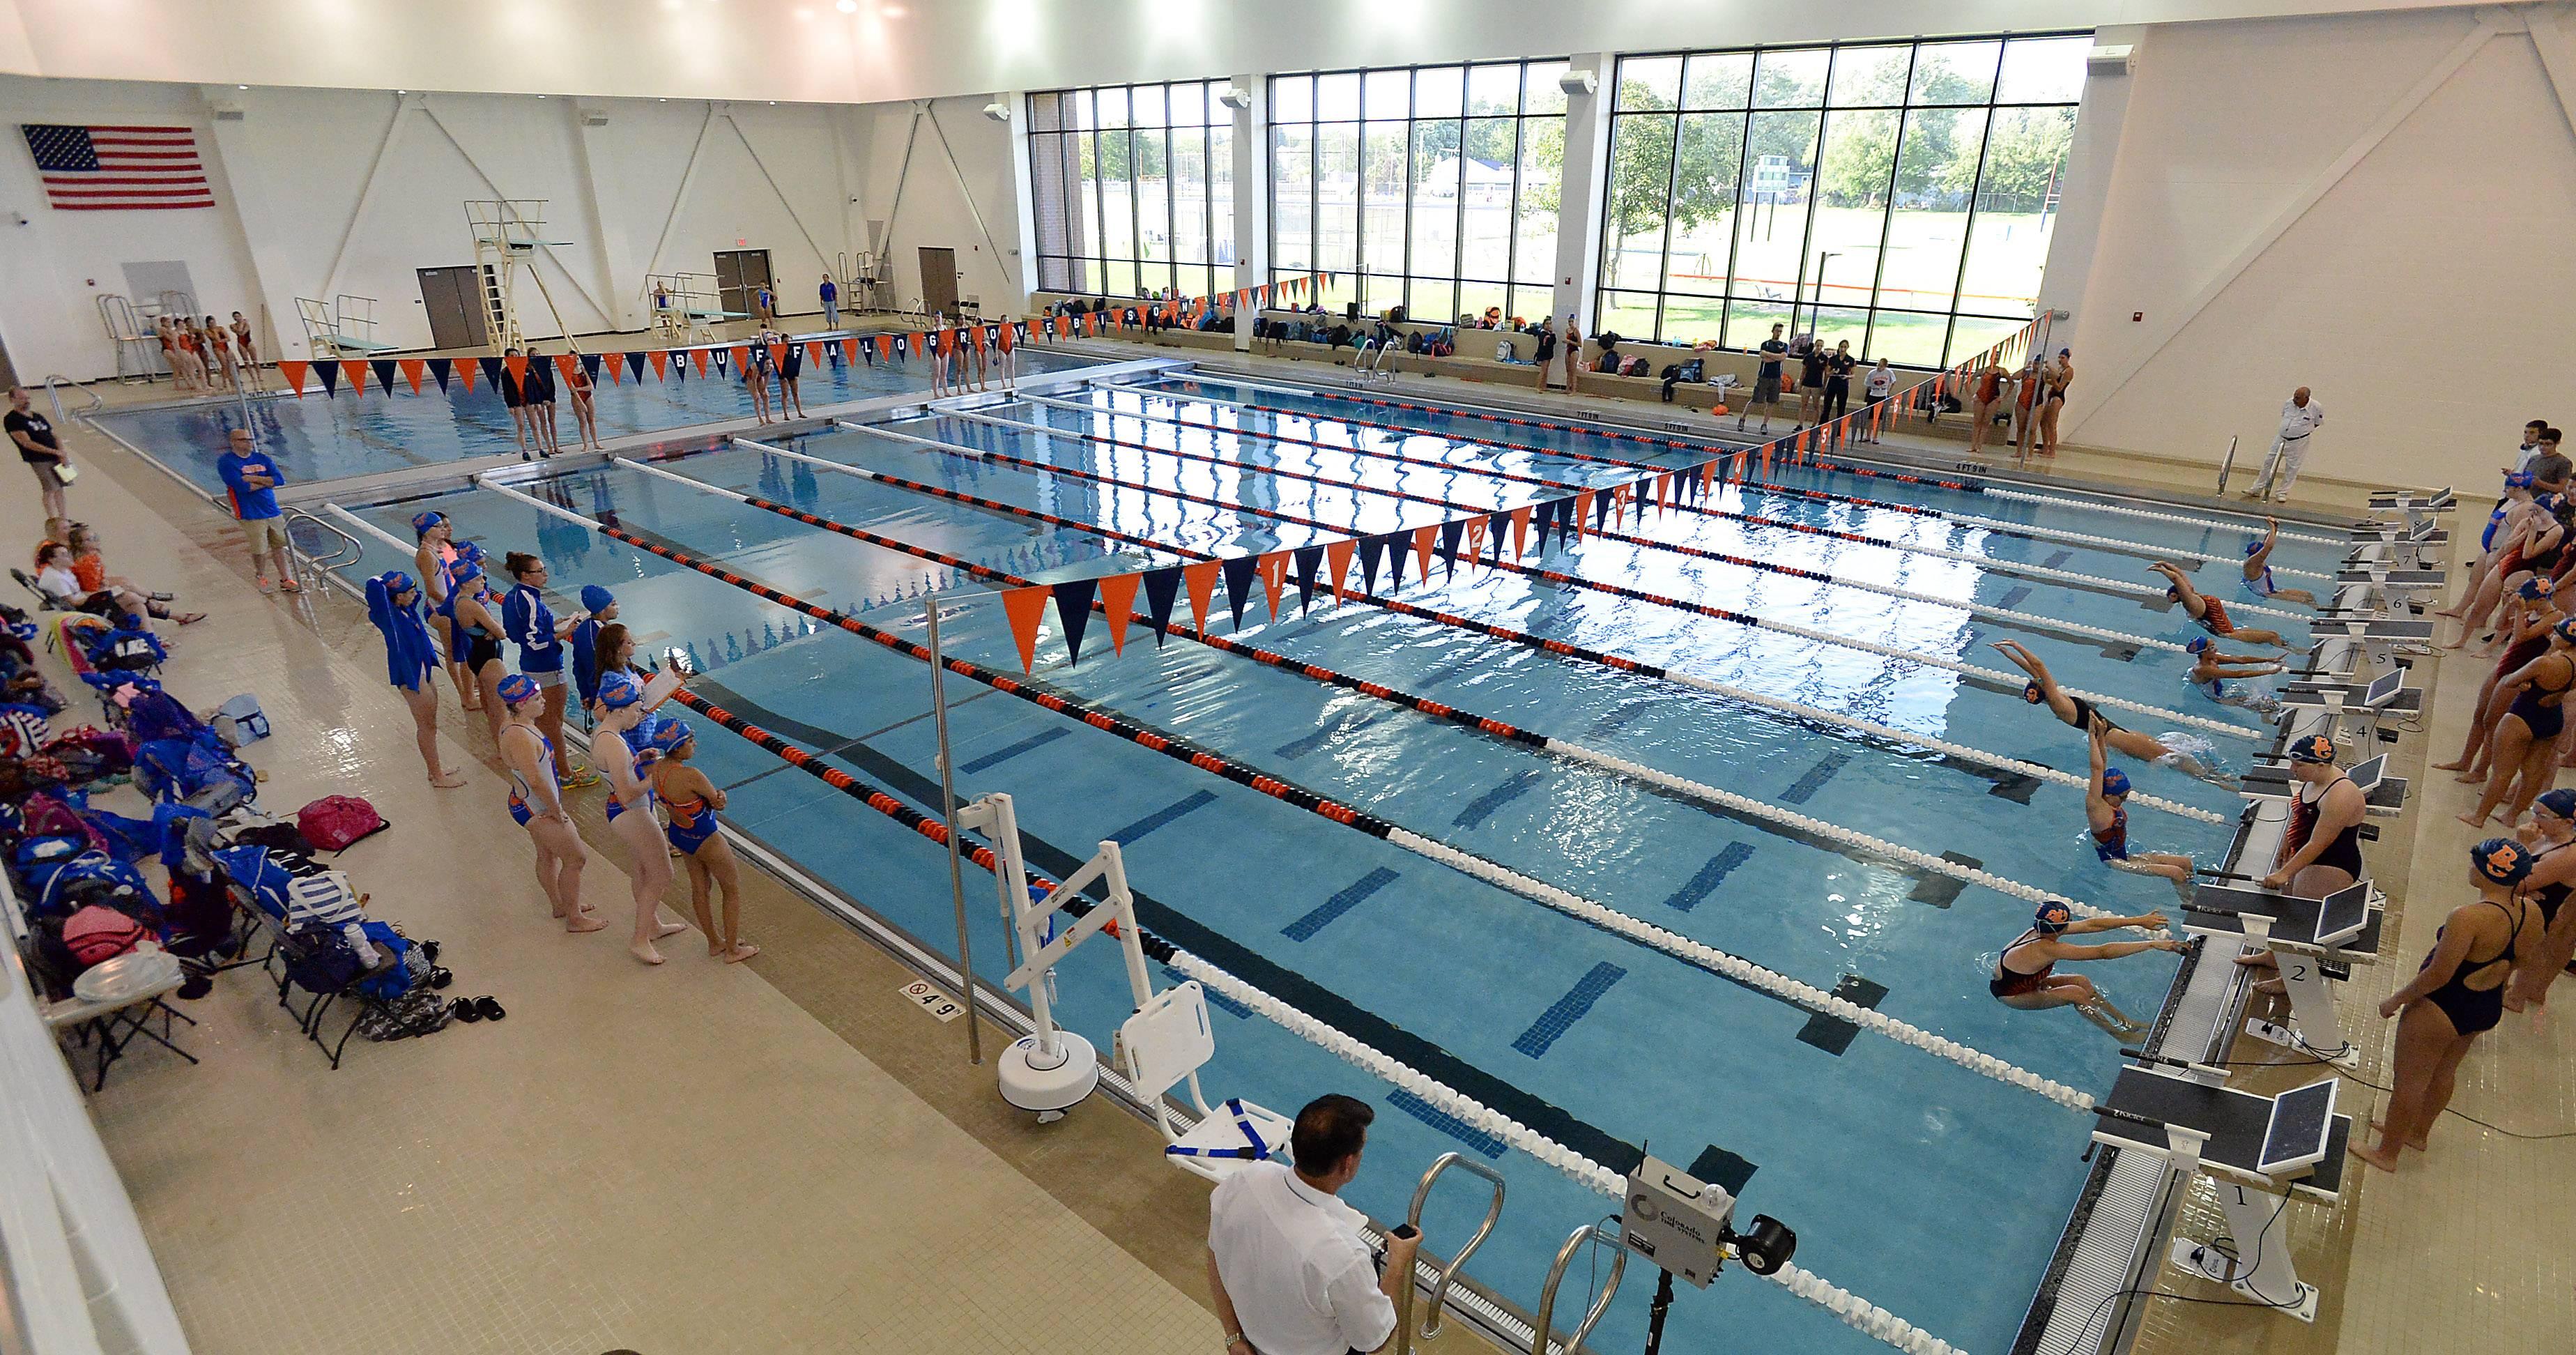 And they're off: The new pool at Buffalo Grove High School has its first race, the 200-yard JV medley relay.